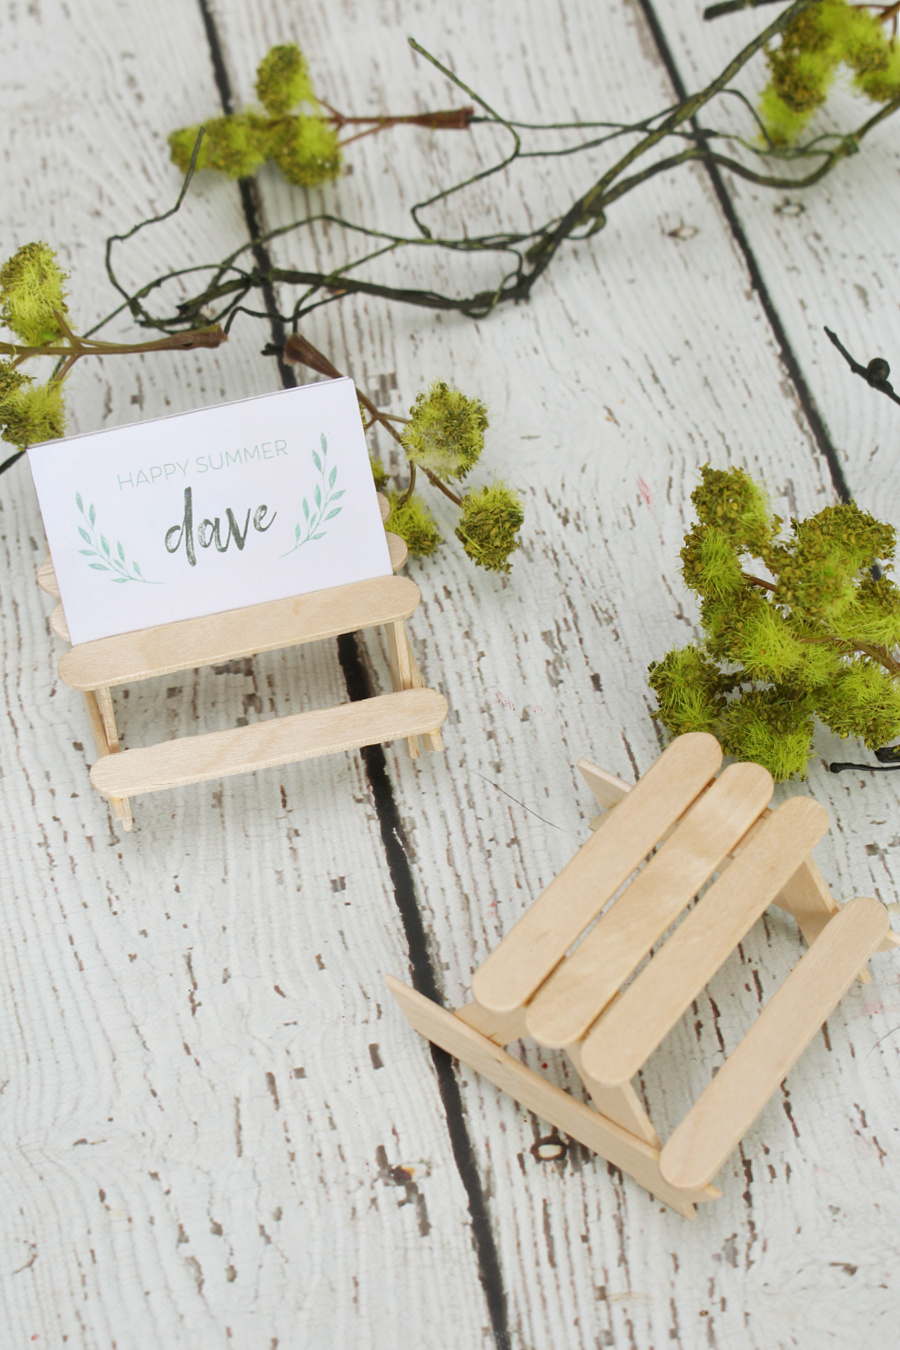 Cute popsicle stick picnic tables used as a place card holder.